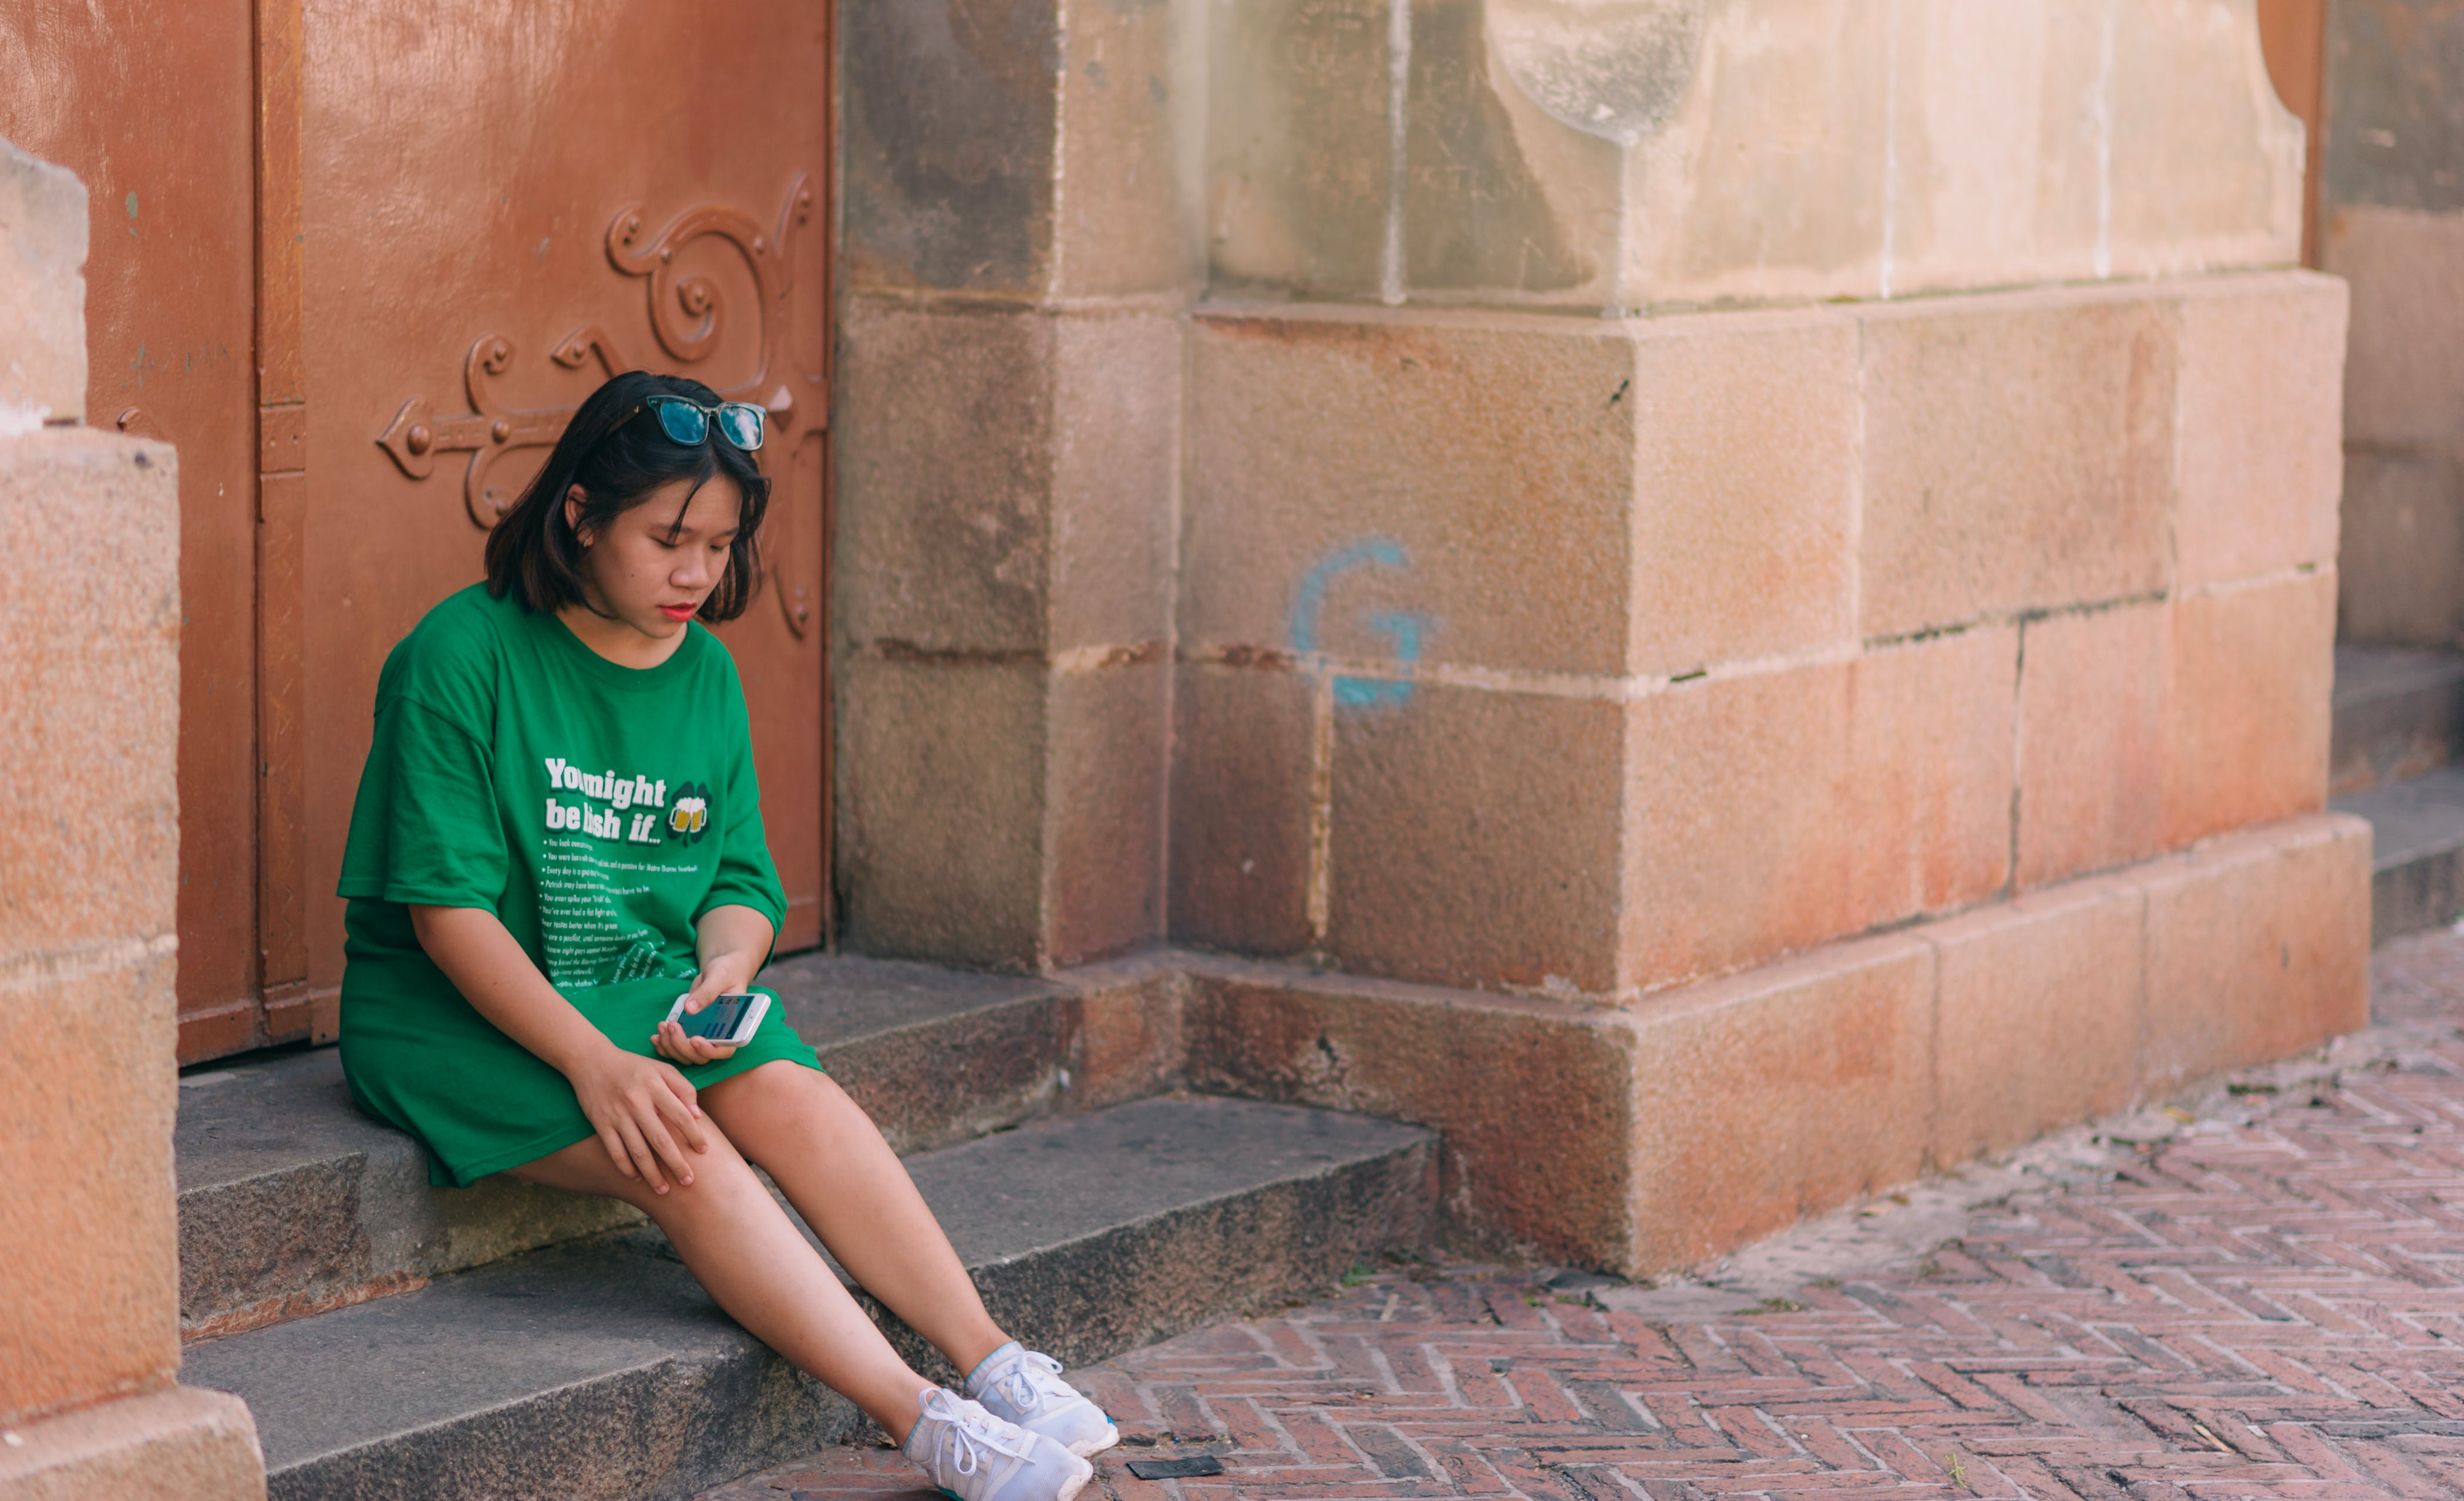 Woman Wearing Green Shirt Sitting Near Brown Gate Holding Smartphone